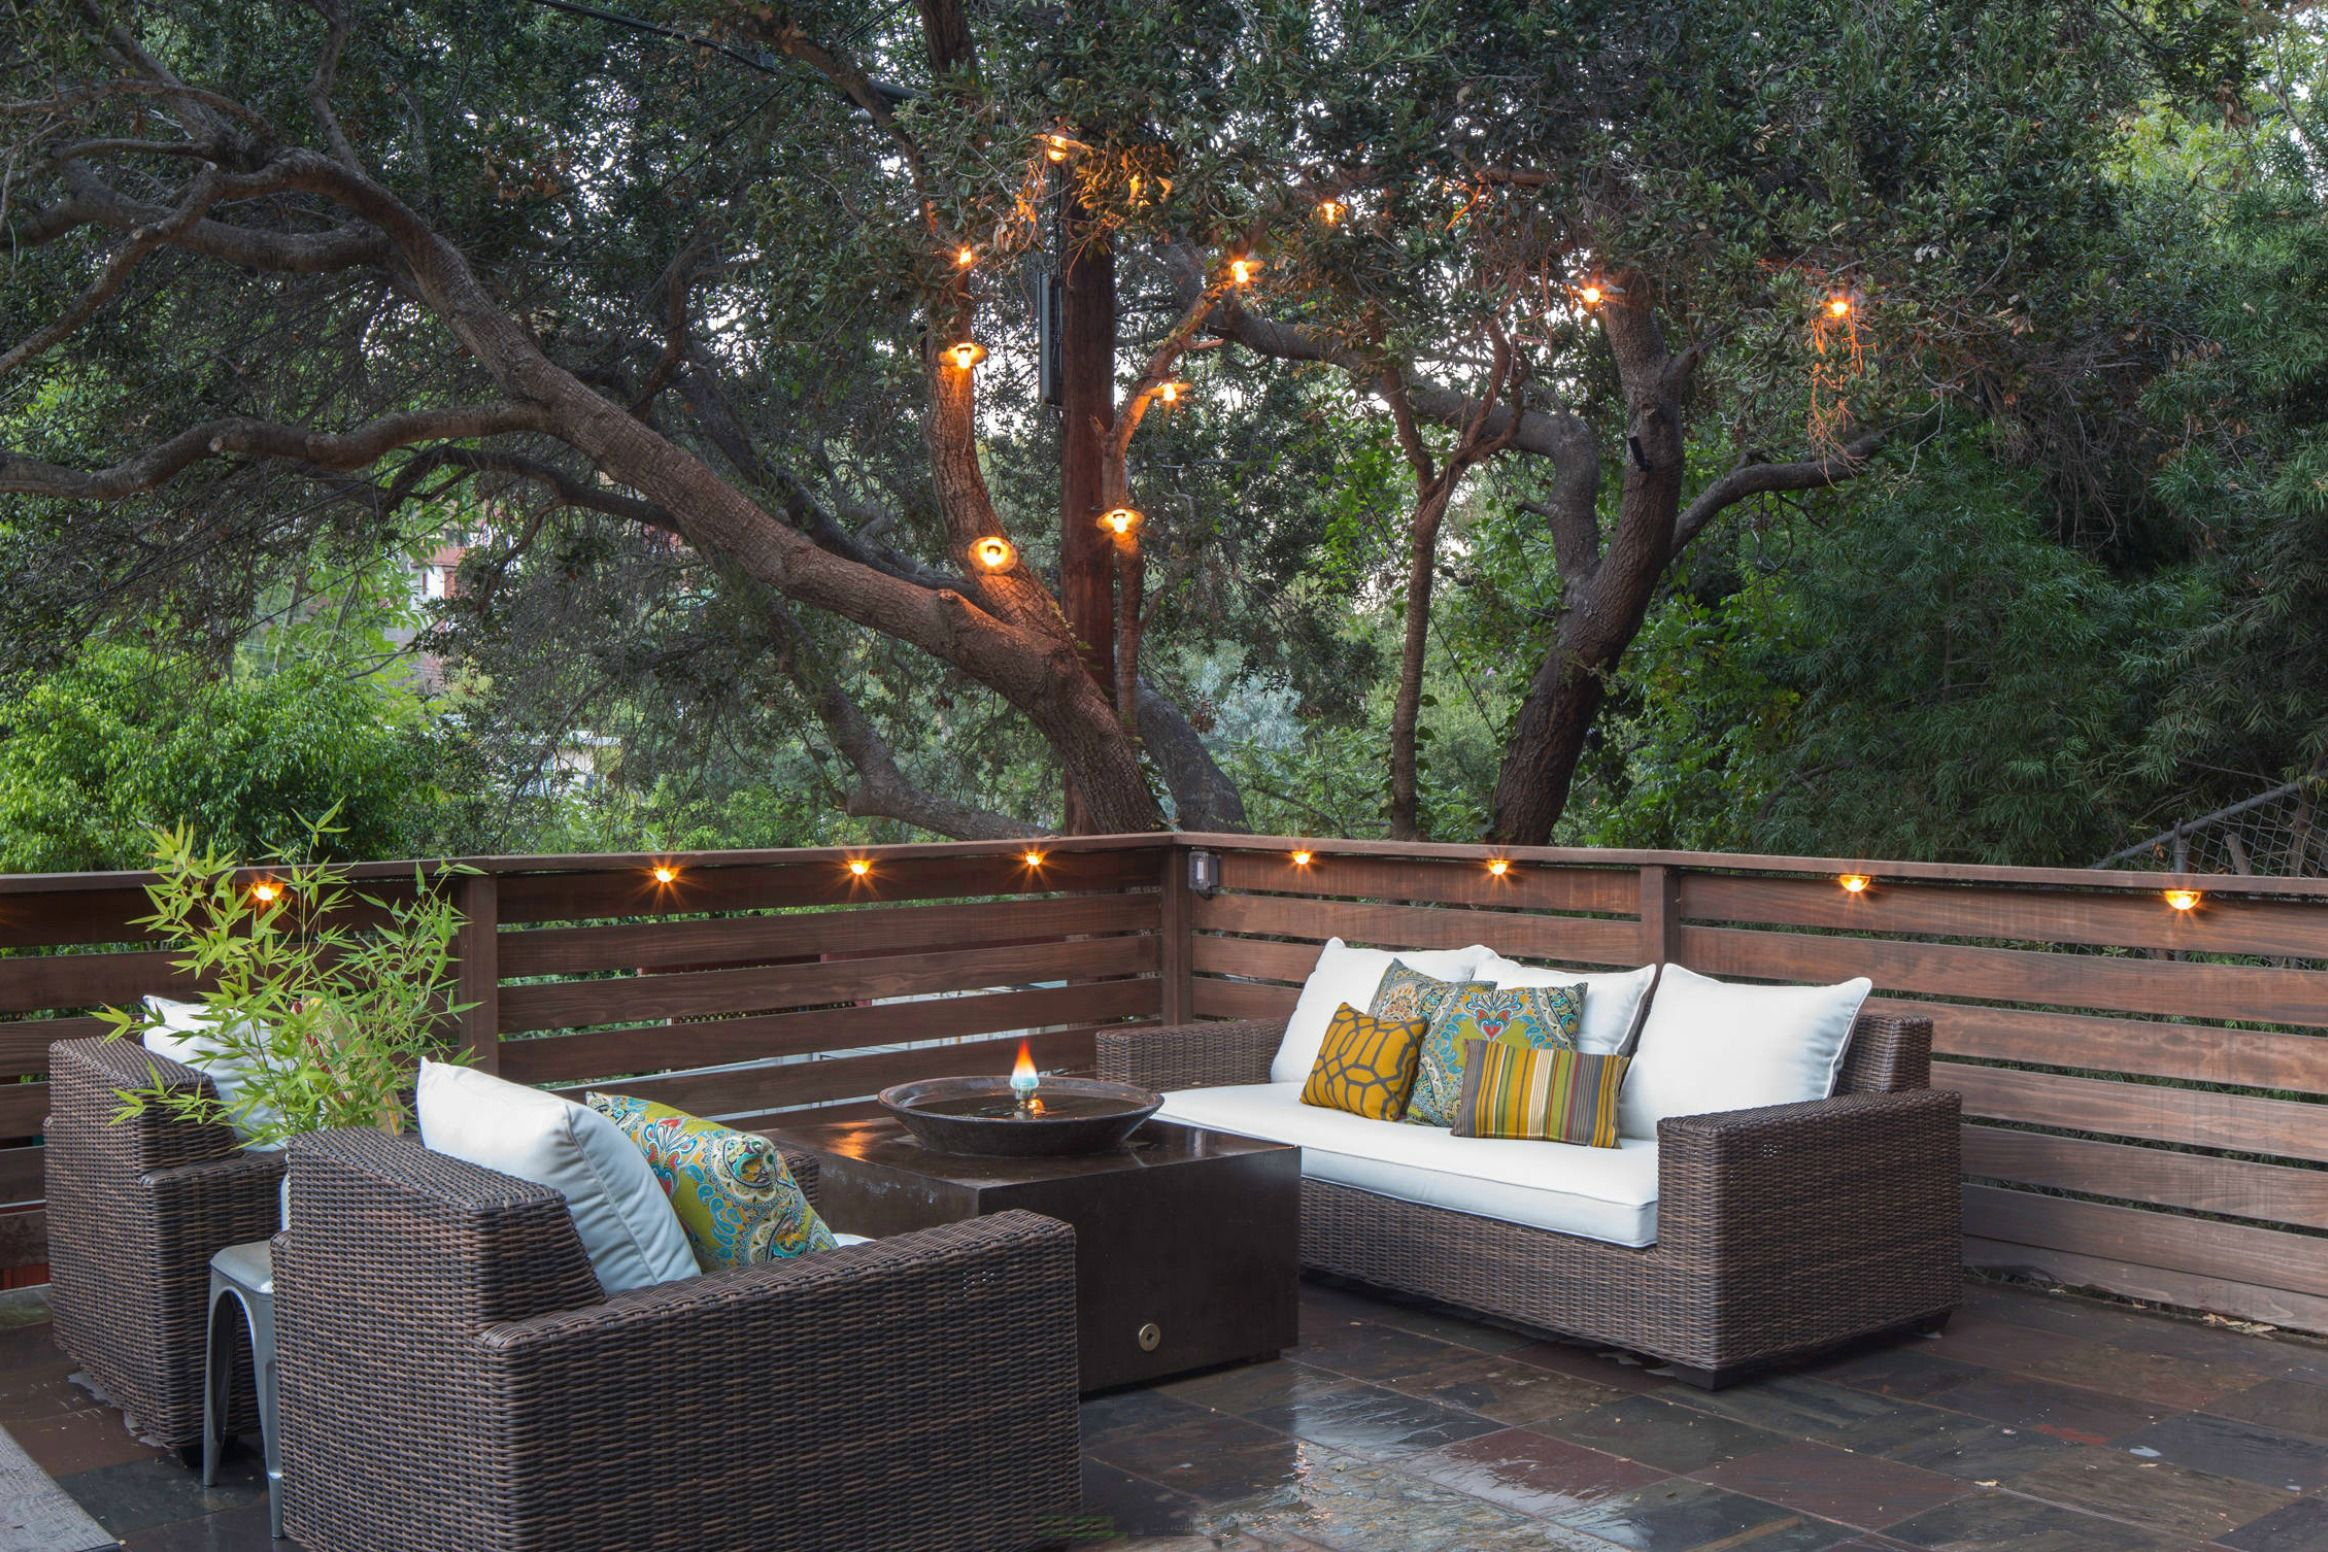 15 deck lighting ideas for every season - Deck Lighting Ideas